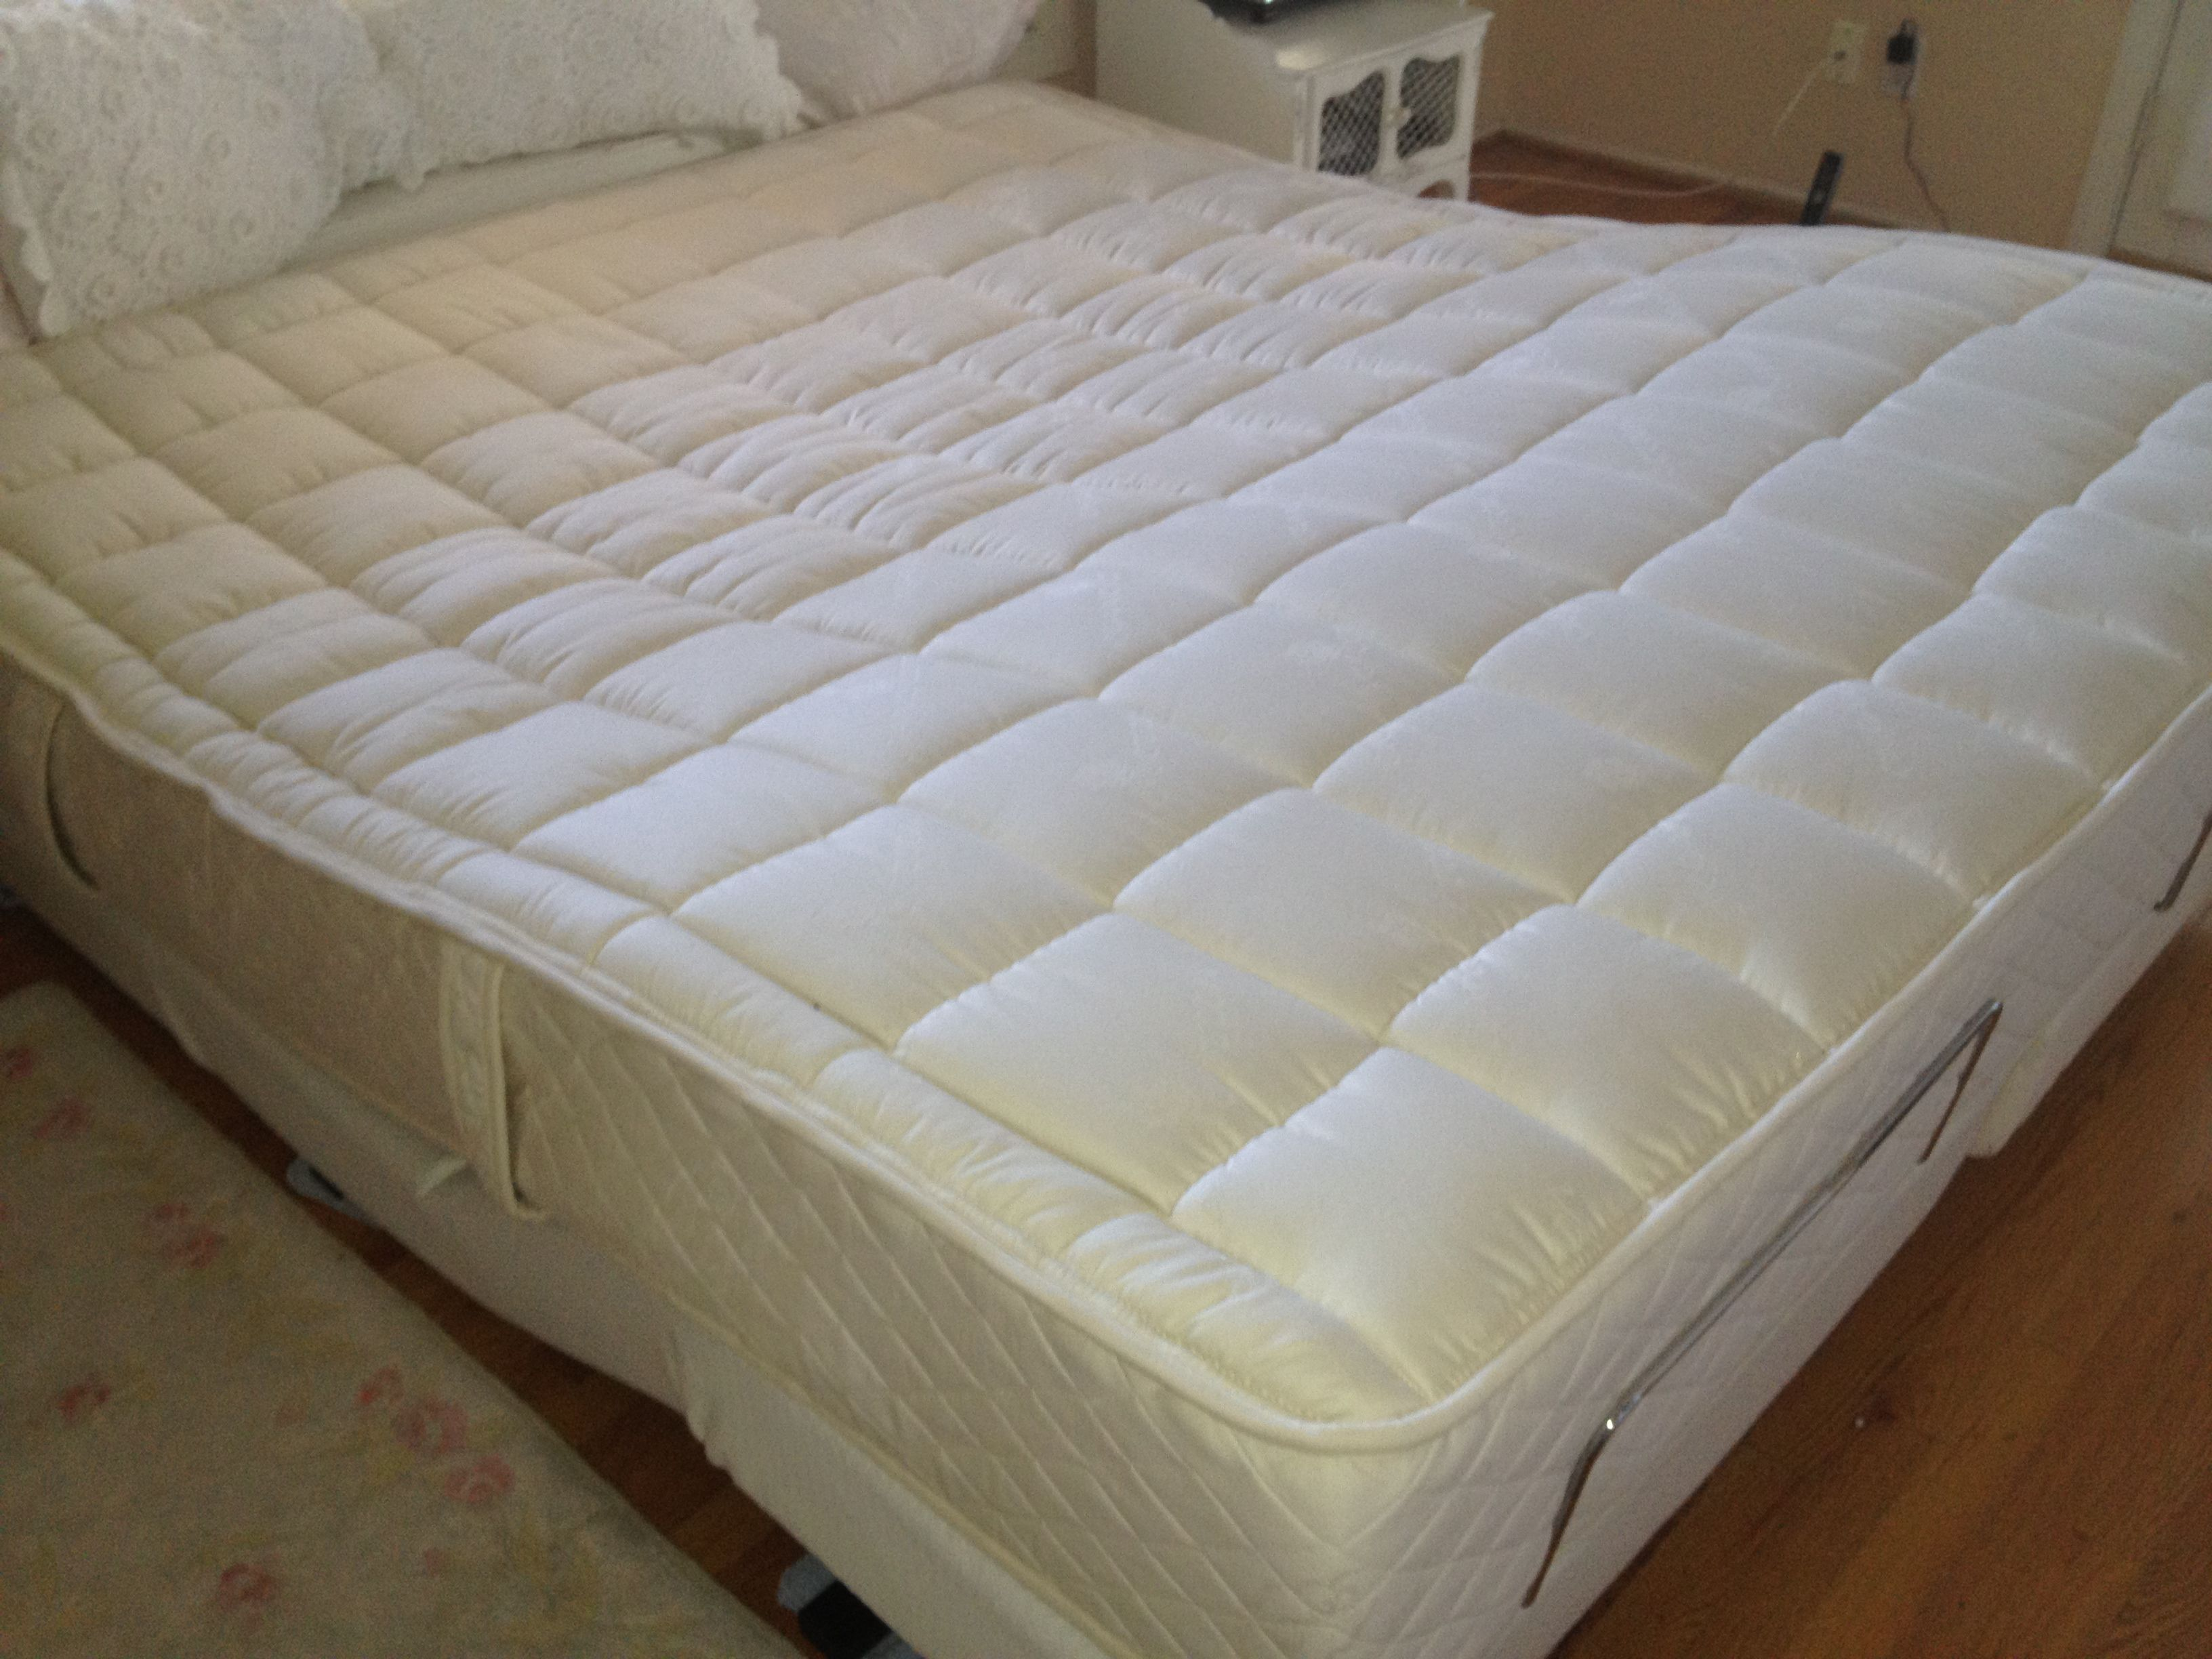 new King Size Bed Mattress Fancy King Size Bed Mattress For